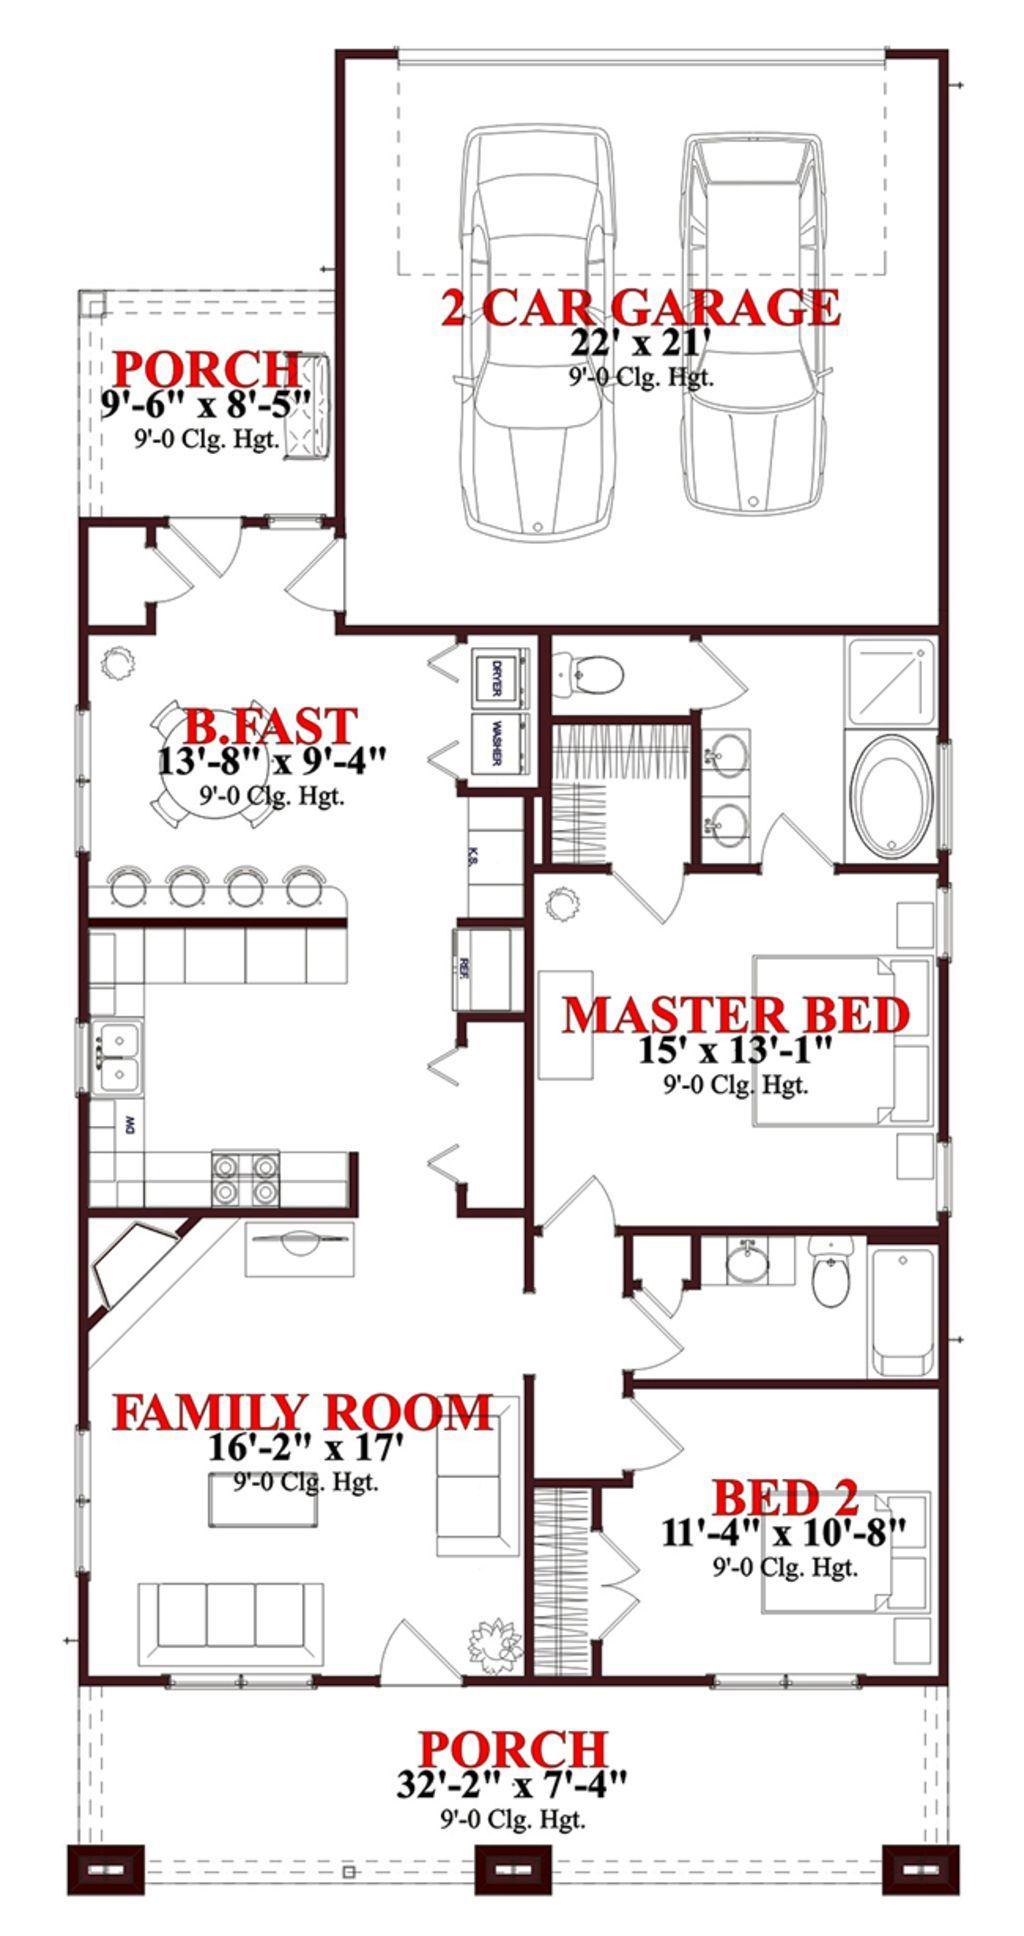 Craftsman Style House Plan 2 Beds 2 Baths 1302 Sq Ft Plan 63 273 Craftsman House Plans House Plans Craftsman Style House Plans